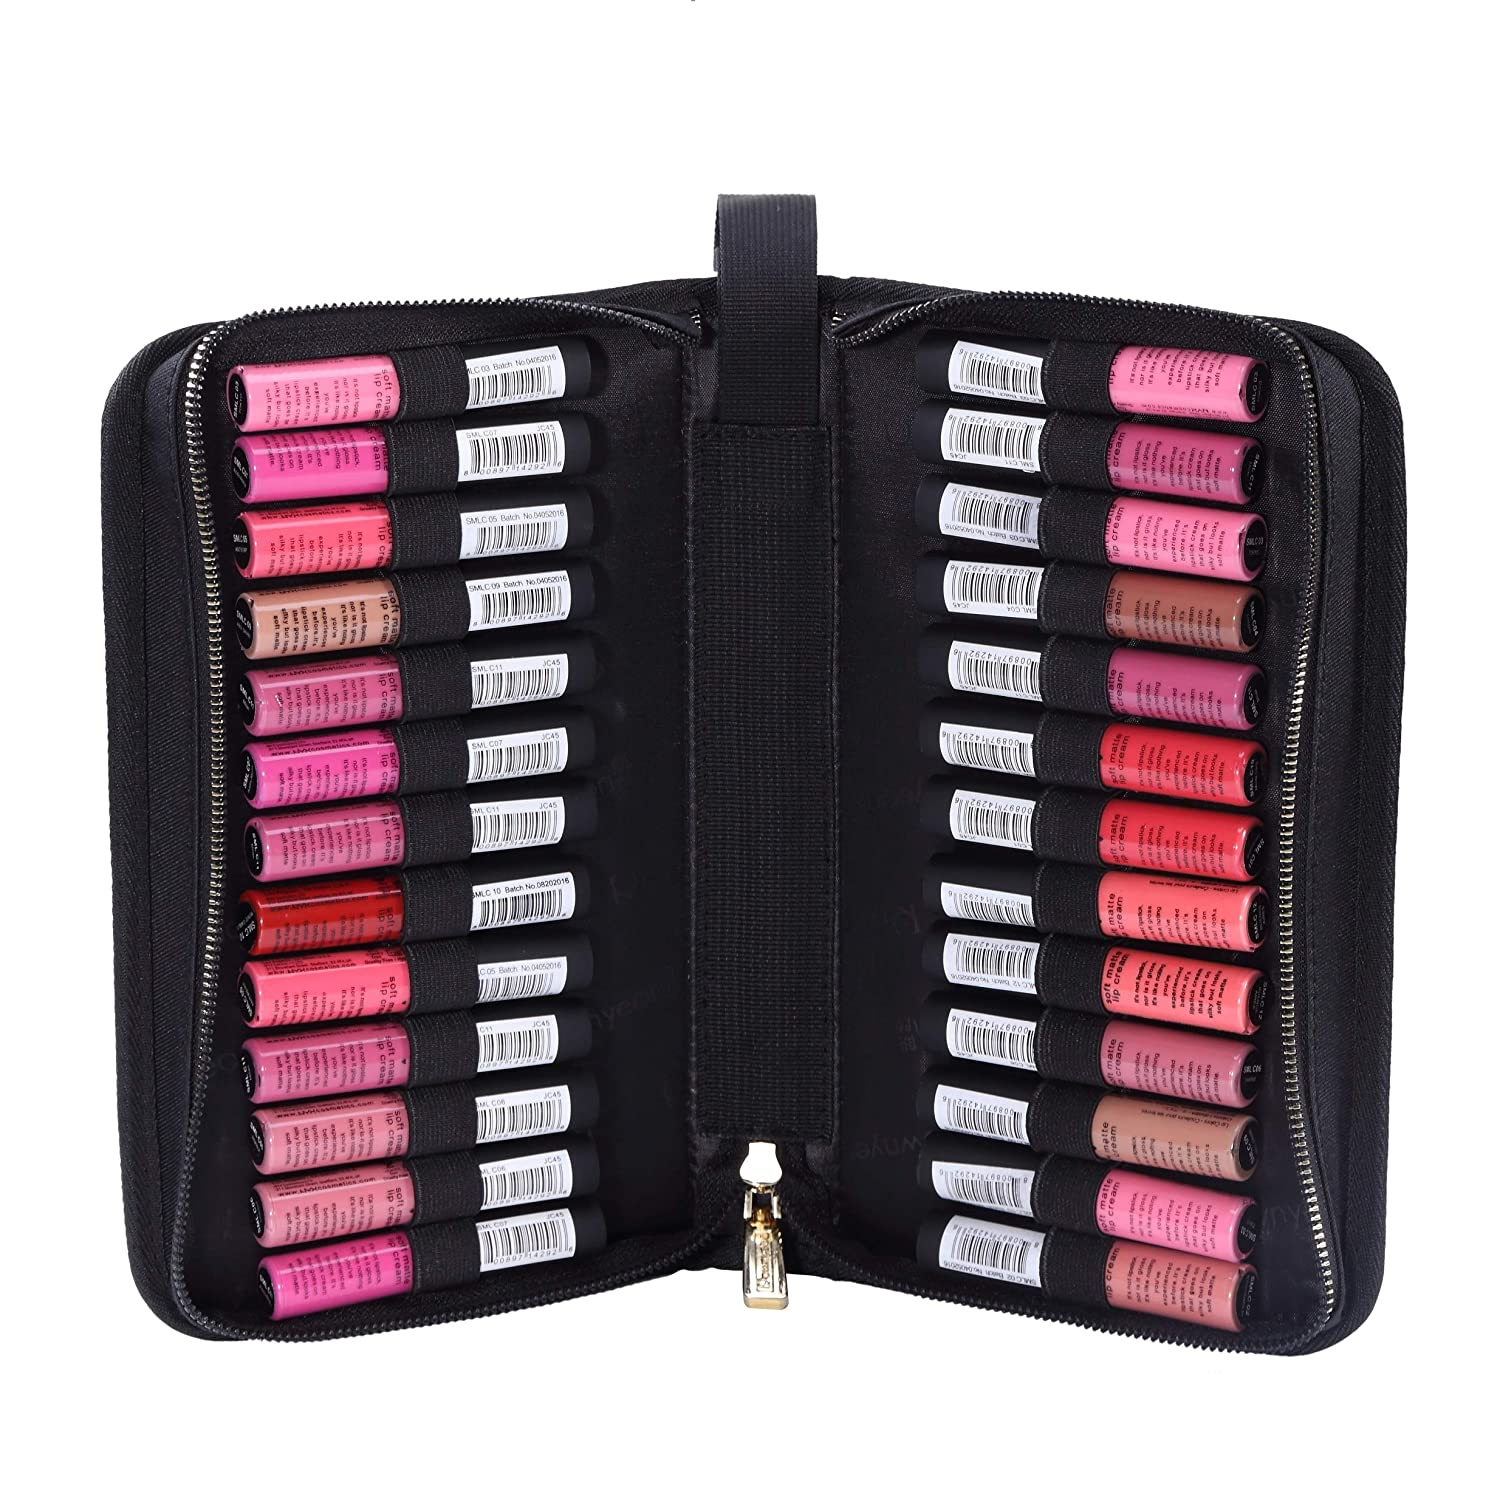 ROWNYEON Lipstick Tester Case Lipstick Makeup Bag Makeup Case Lipstick Lip Gloss Organizer Portable Lipstick Stock Case Holder Organizer with Handle Strap 26 Slots Black